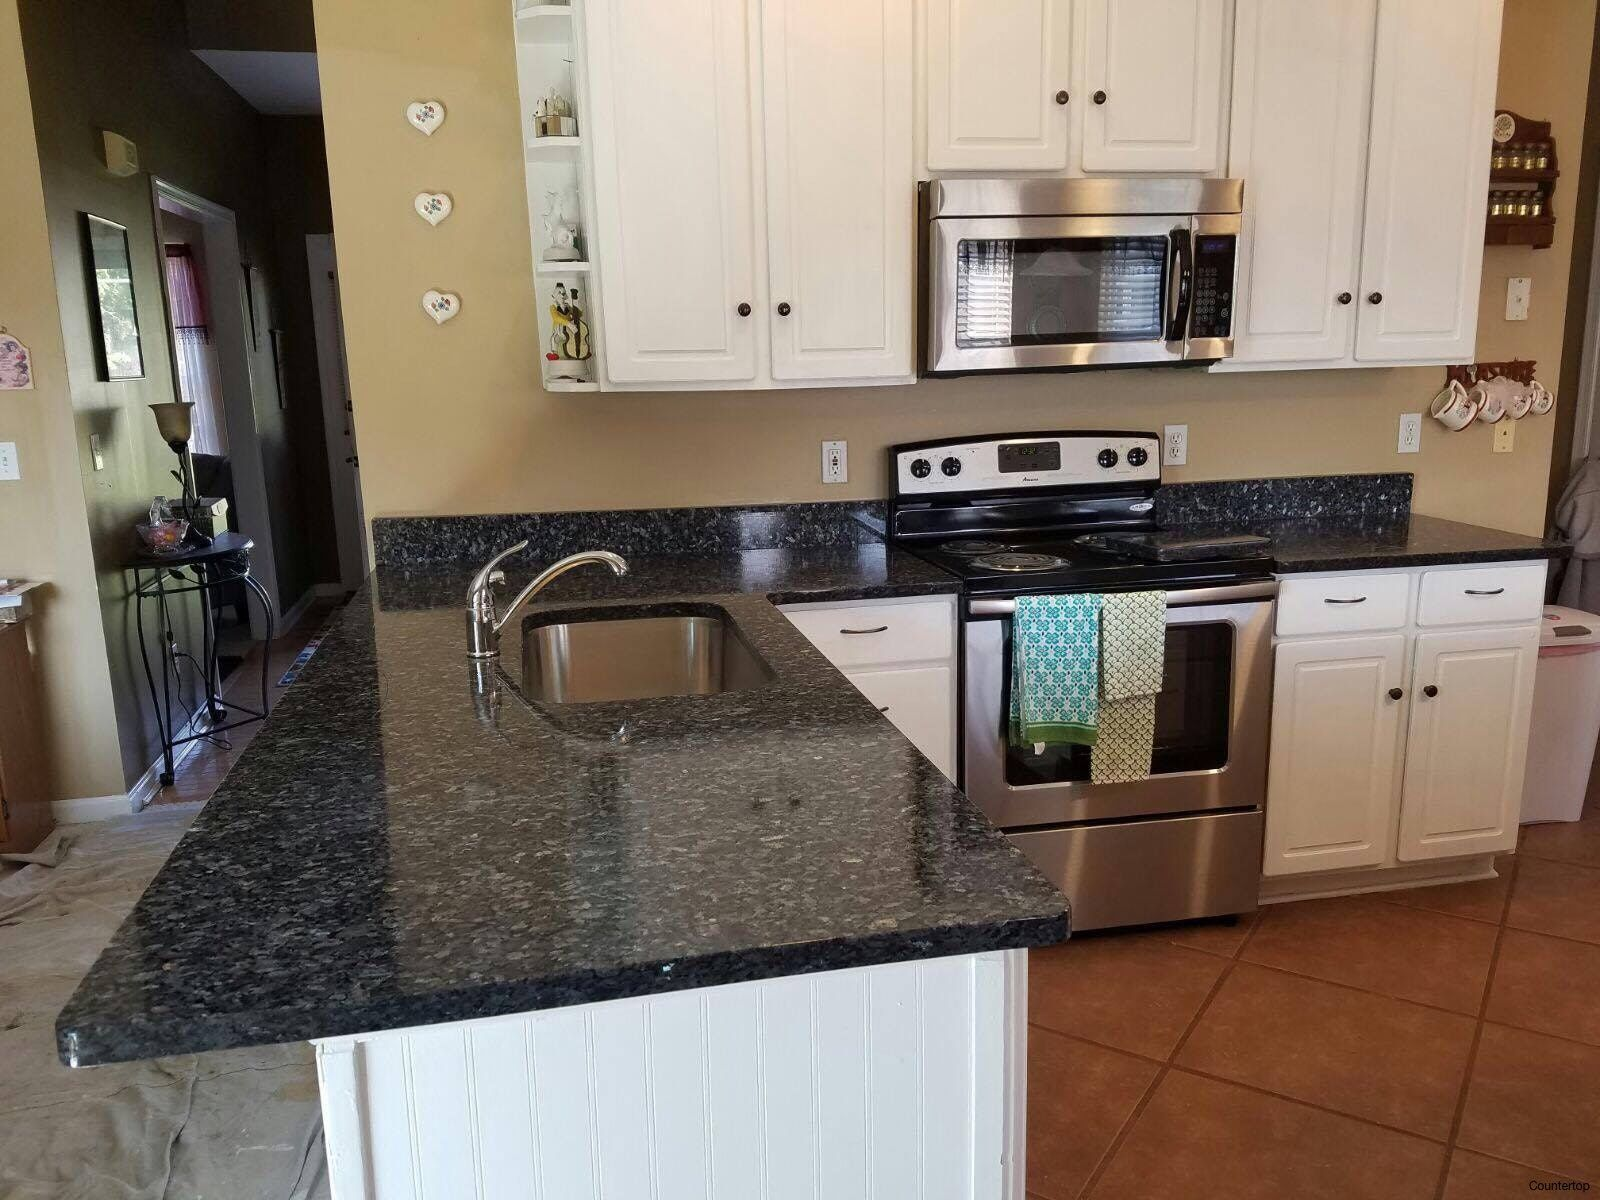 50 Granite Countertops Hagerstown Md Kitchen Cabinets Update Ideas On A Bud Cost Of Granite Countertops Granite Countertops Kitchen Cost Of Kitchen Cabinets